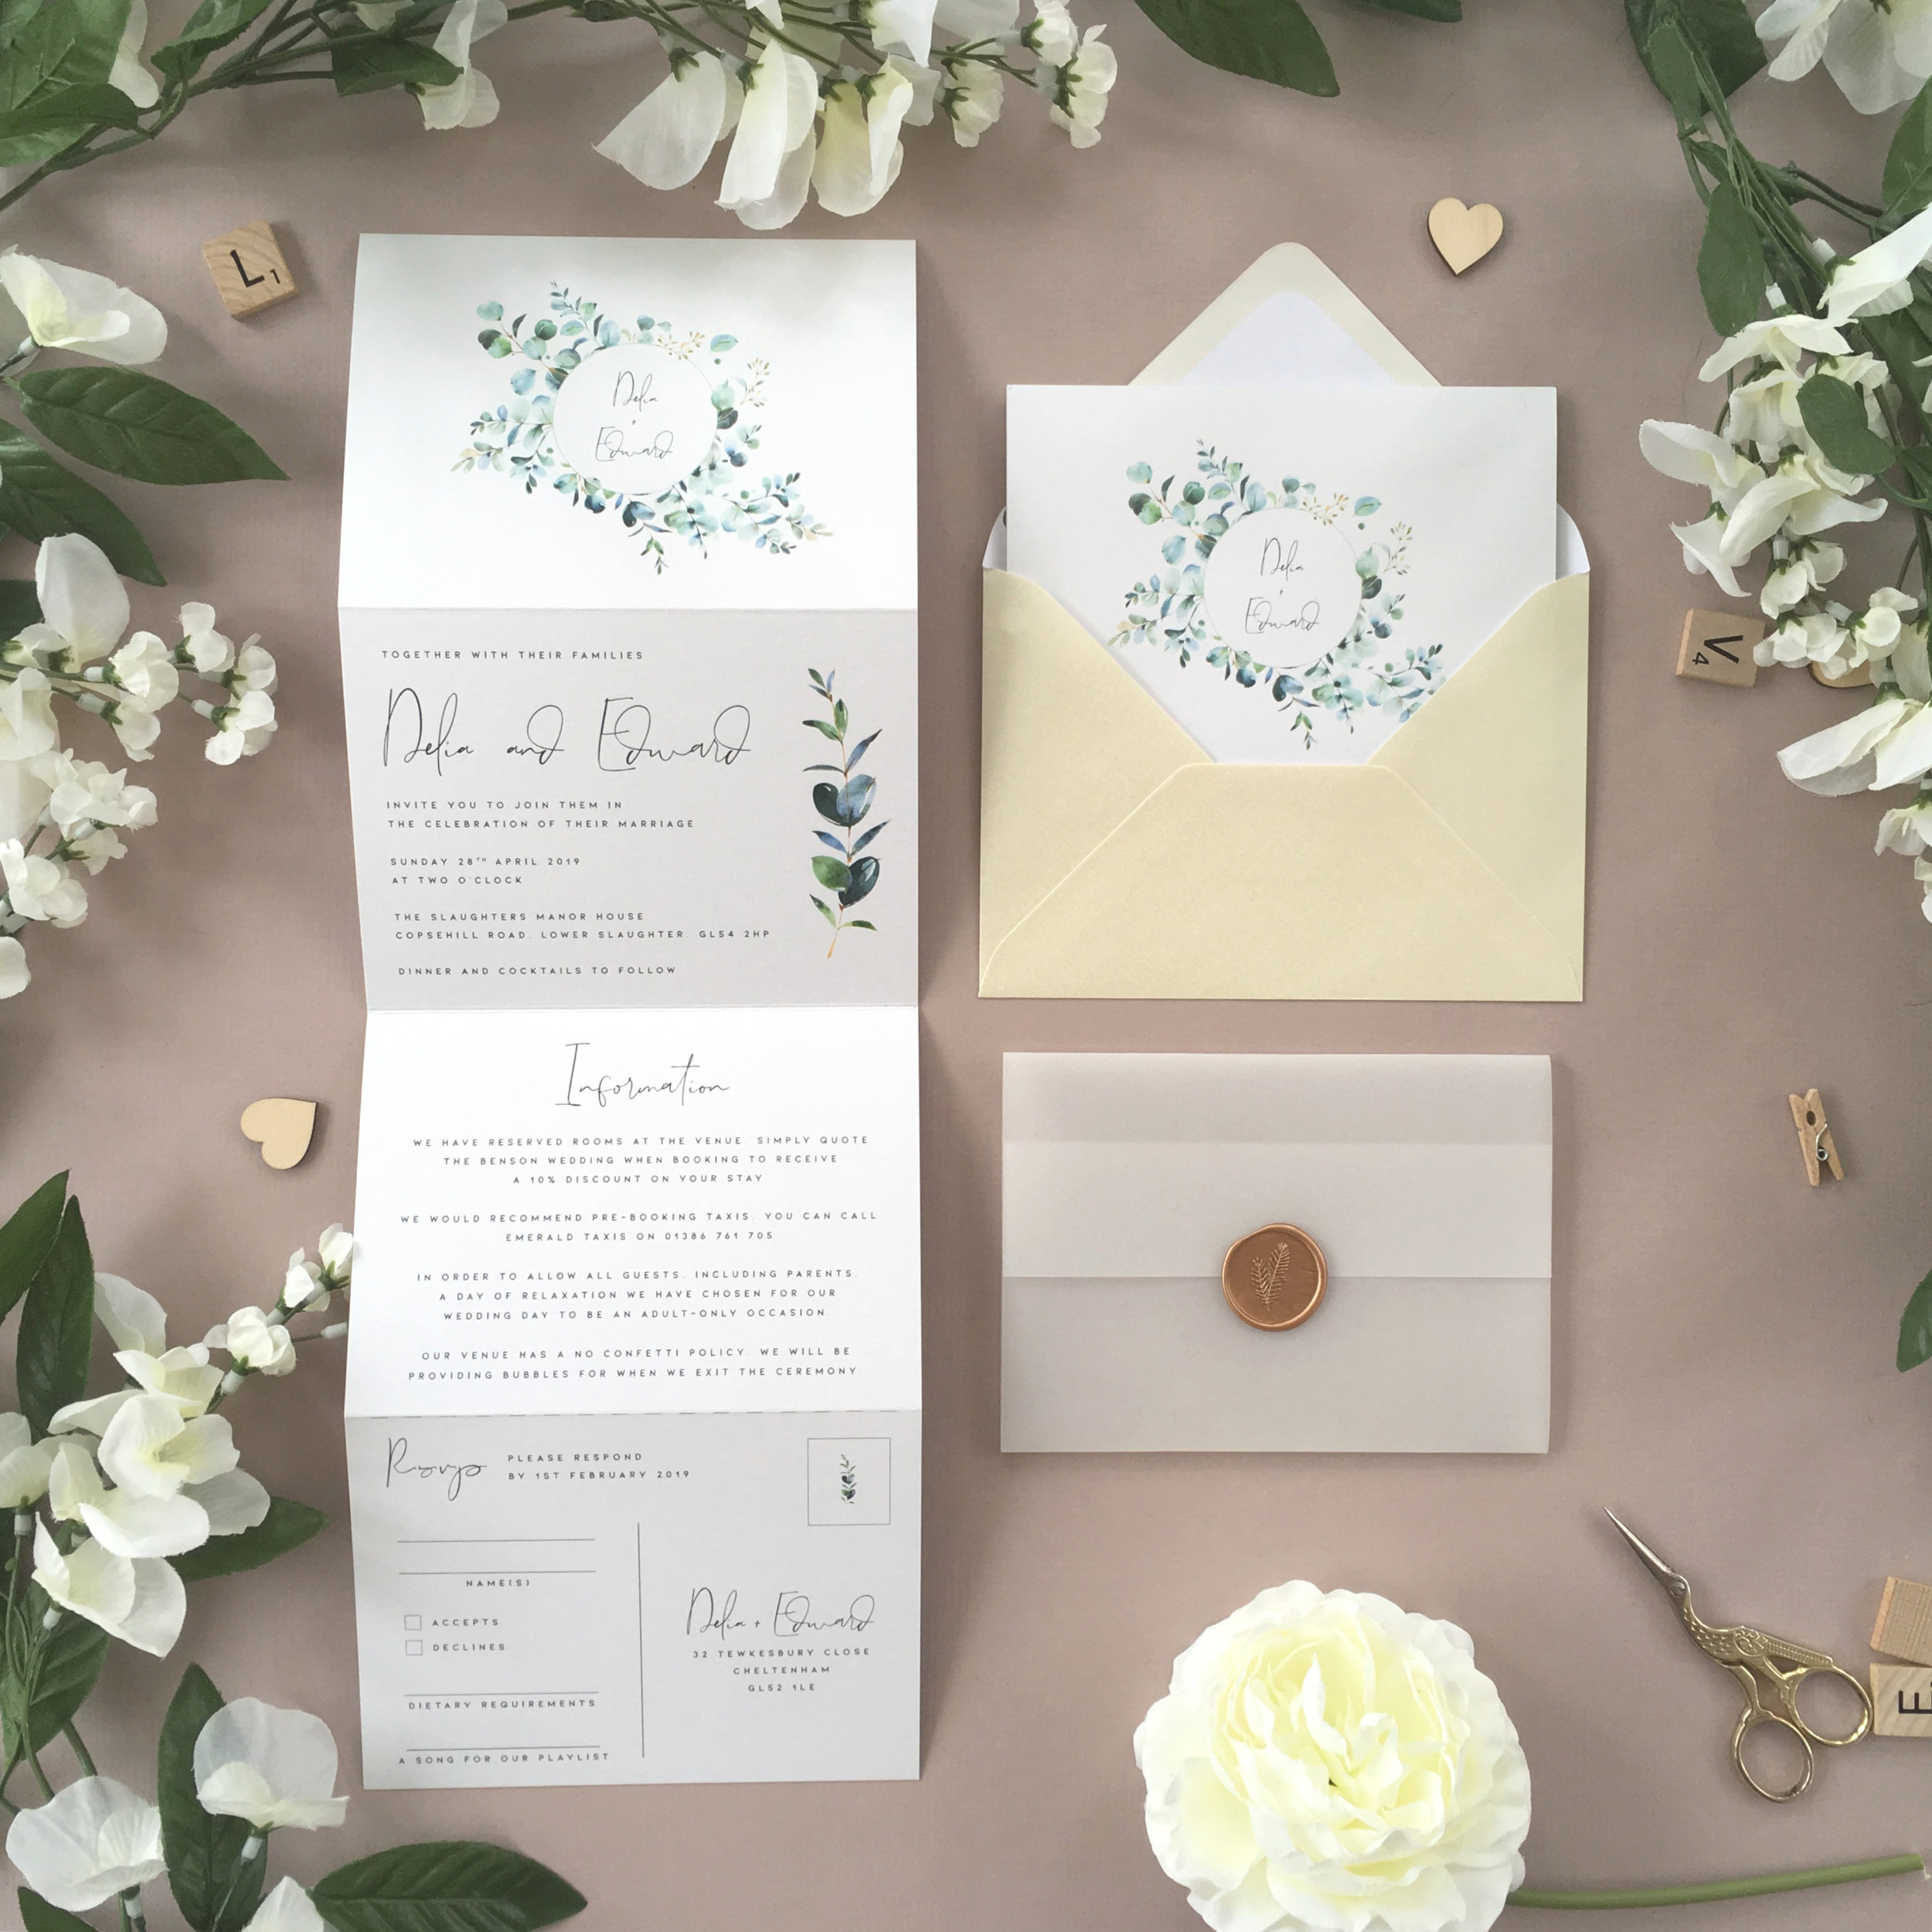 Northwood - Beautiful eucalyptus foliage is used alongside a handwritten script with this botanical-inspired concertina wedding invitation, from our modern and stylish Northwood collection.Our concertina invitations are a great all-in-one solution, with a detachable RSVP at the bottom of the invitation - all guests need to do is fill in their details, put a stamp in the corner and post!Concertina invitations can be provided on an as-is basis, or can be provided bound with a vellum jacket and timeless wax seal, or tied with ribbon or twine for a lovely hand-finished approach.- Concertina Invitation - from £1.95- Ribbon or Twine - £0.40- Vellum Jacket - £0.40- Wax Seal - £0.85 (Custom engraving also available)White envelope provided as standard with coloured upgrade available.